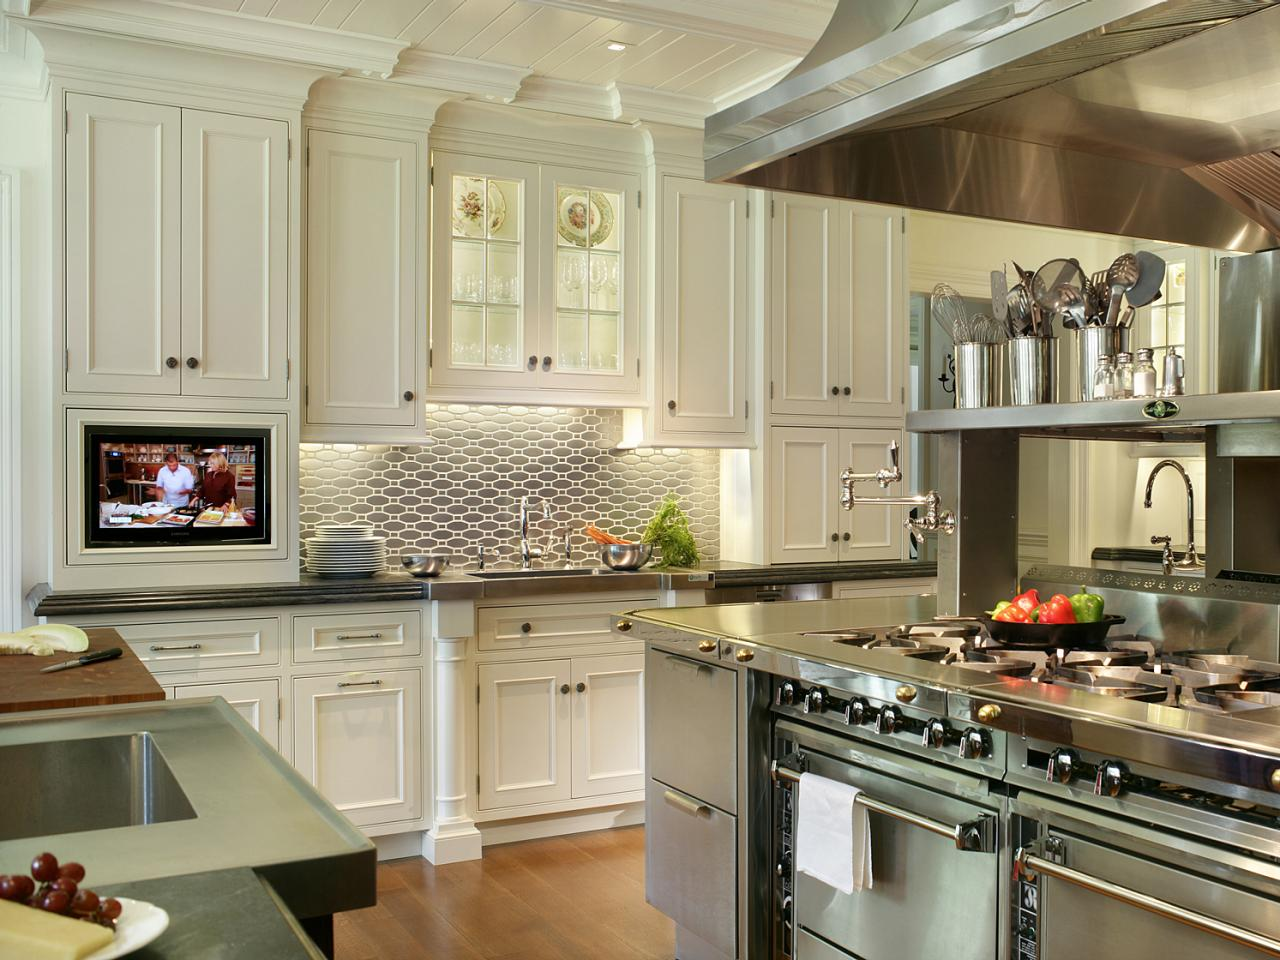 Kitchen Cabinet Door Accessories And Components